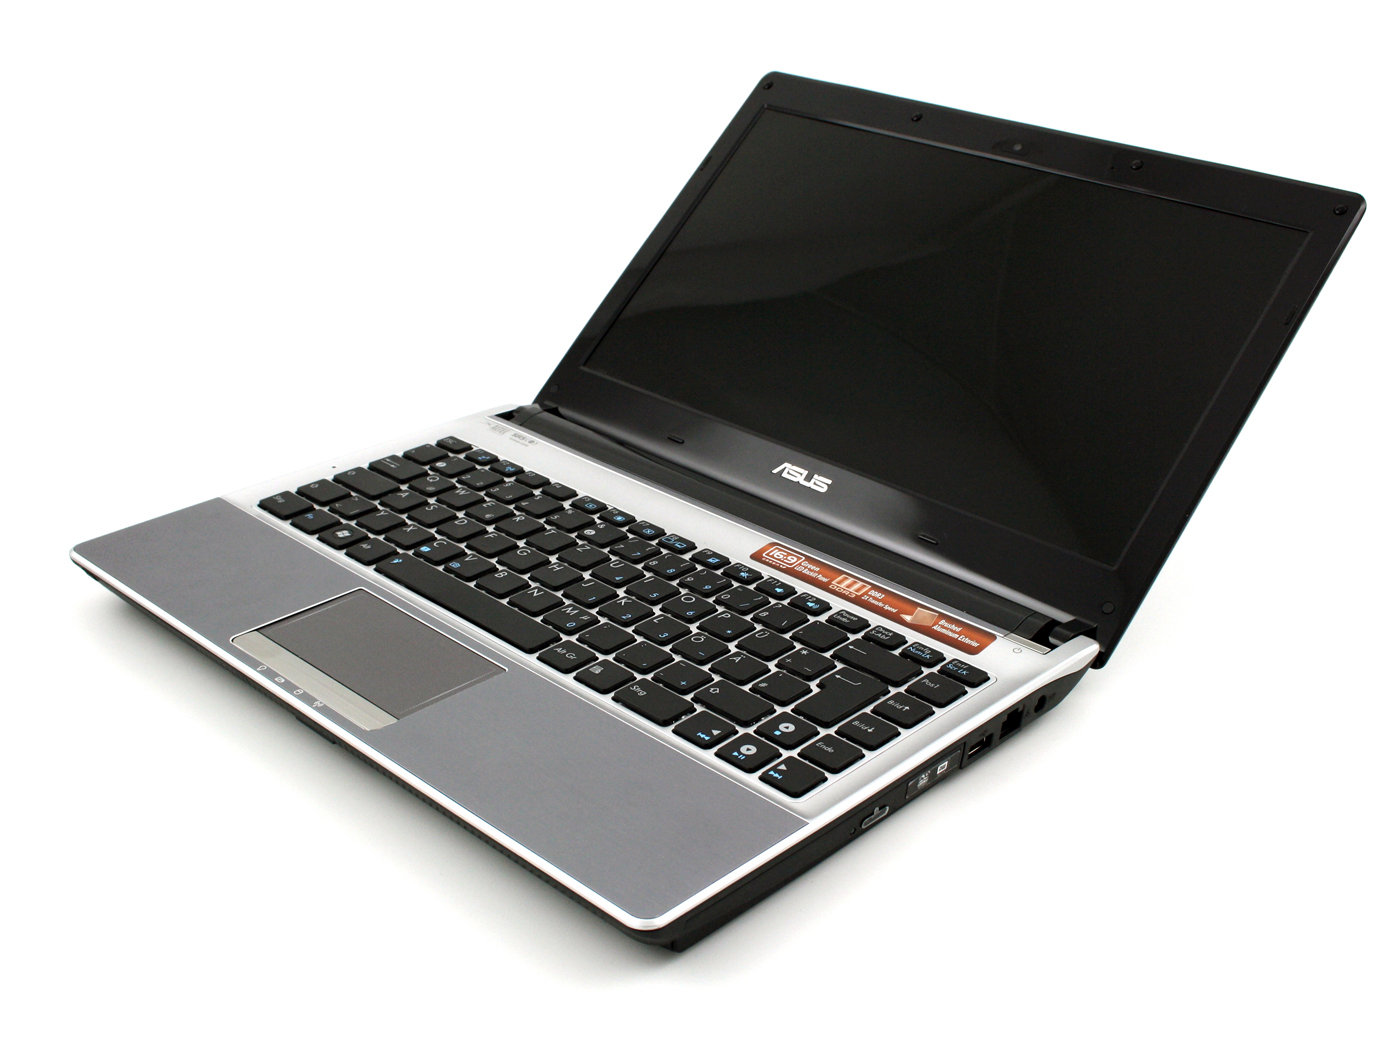 ASUS U30J DRIVERS FOR WINDOWS XP